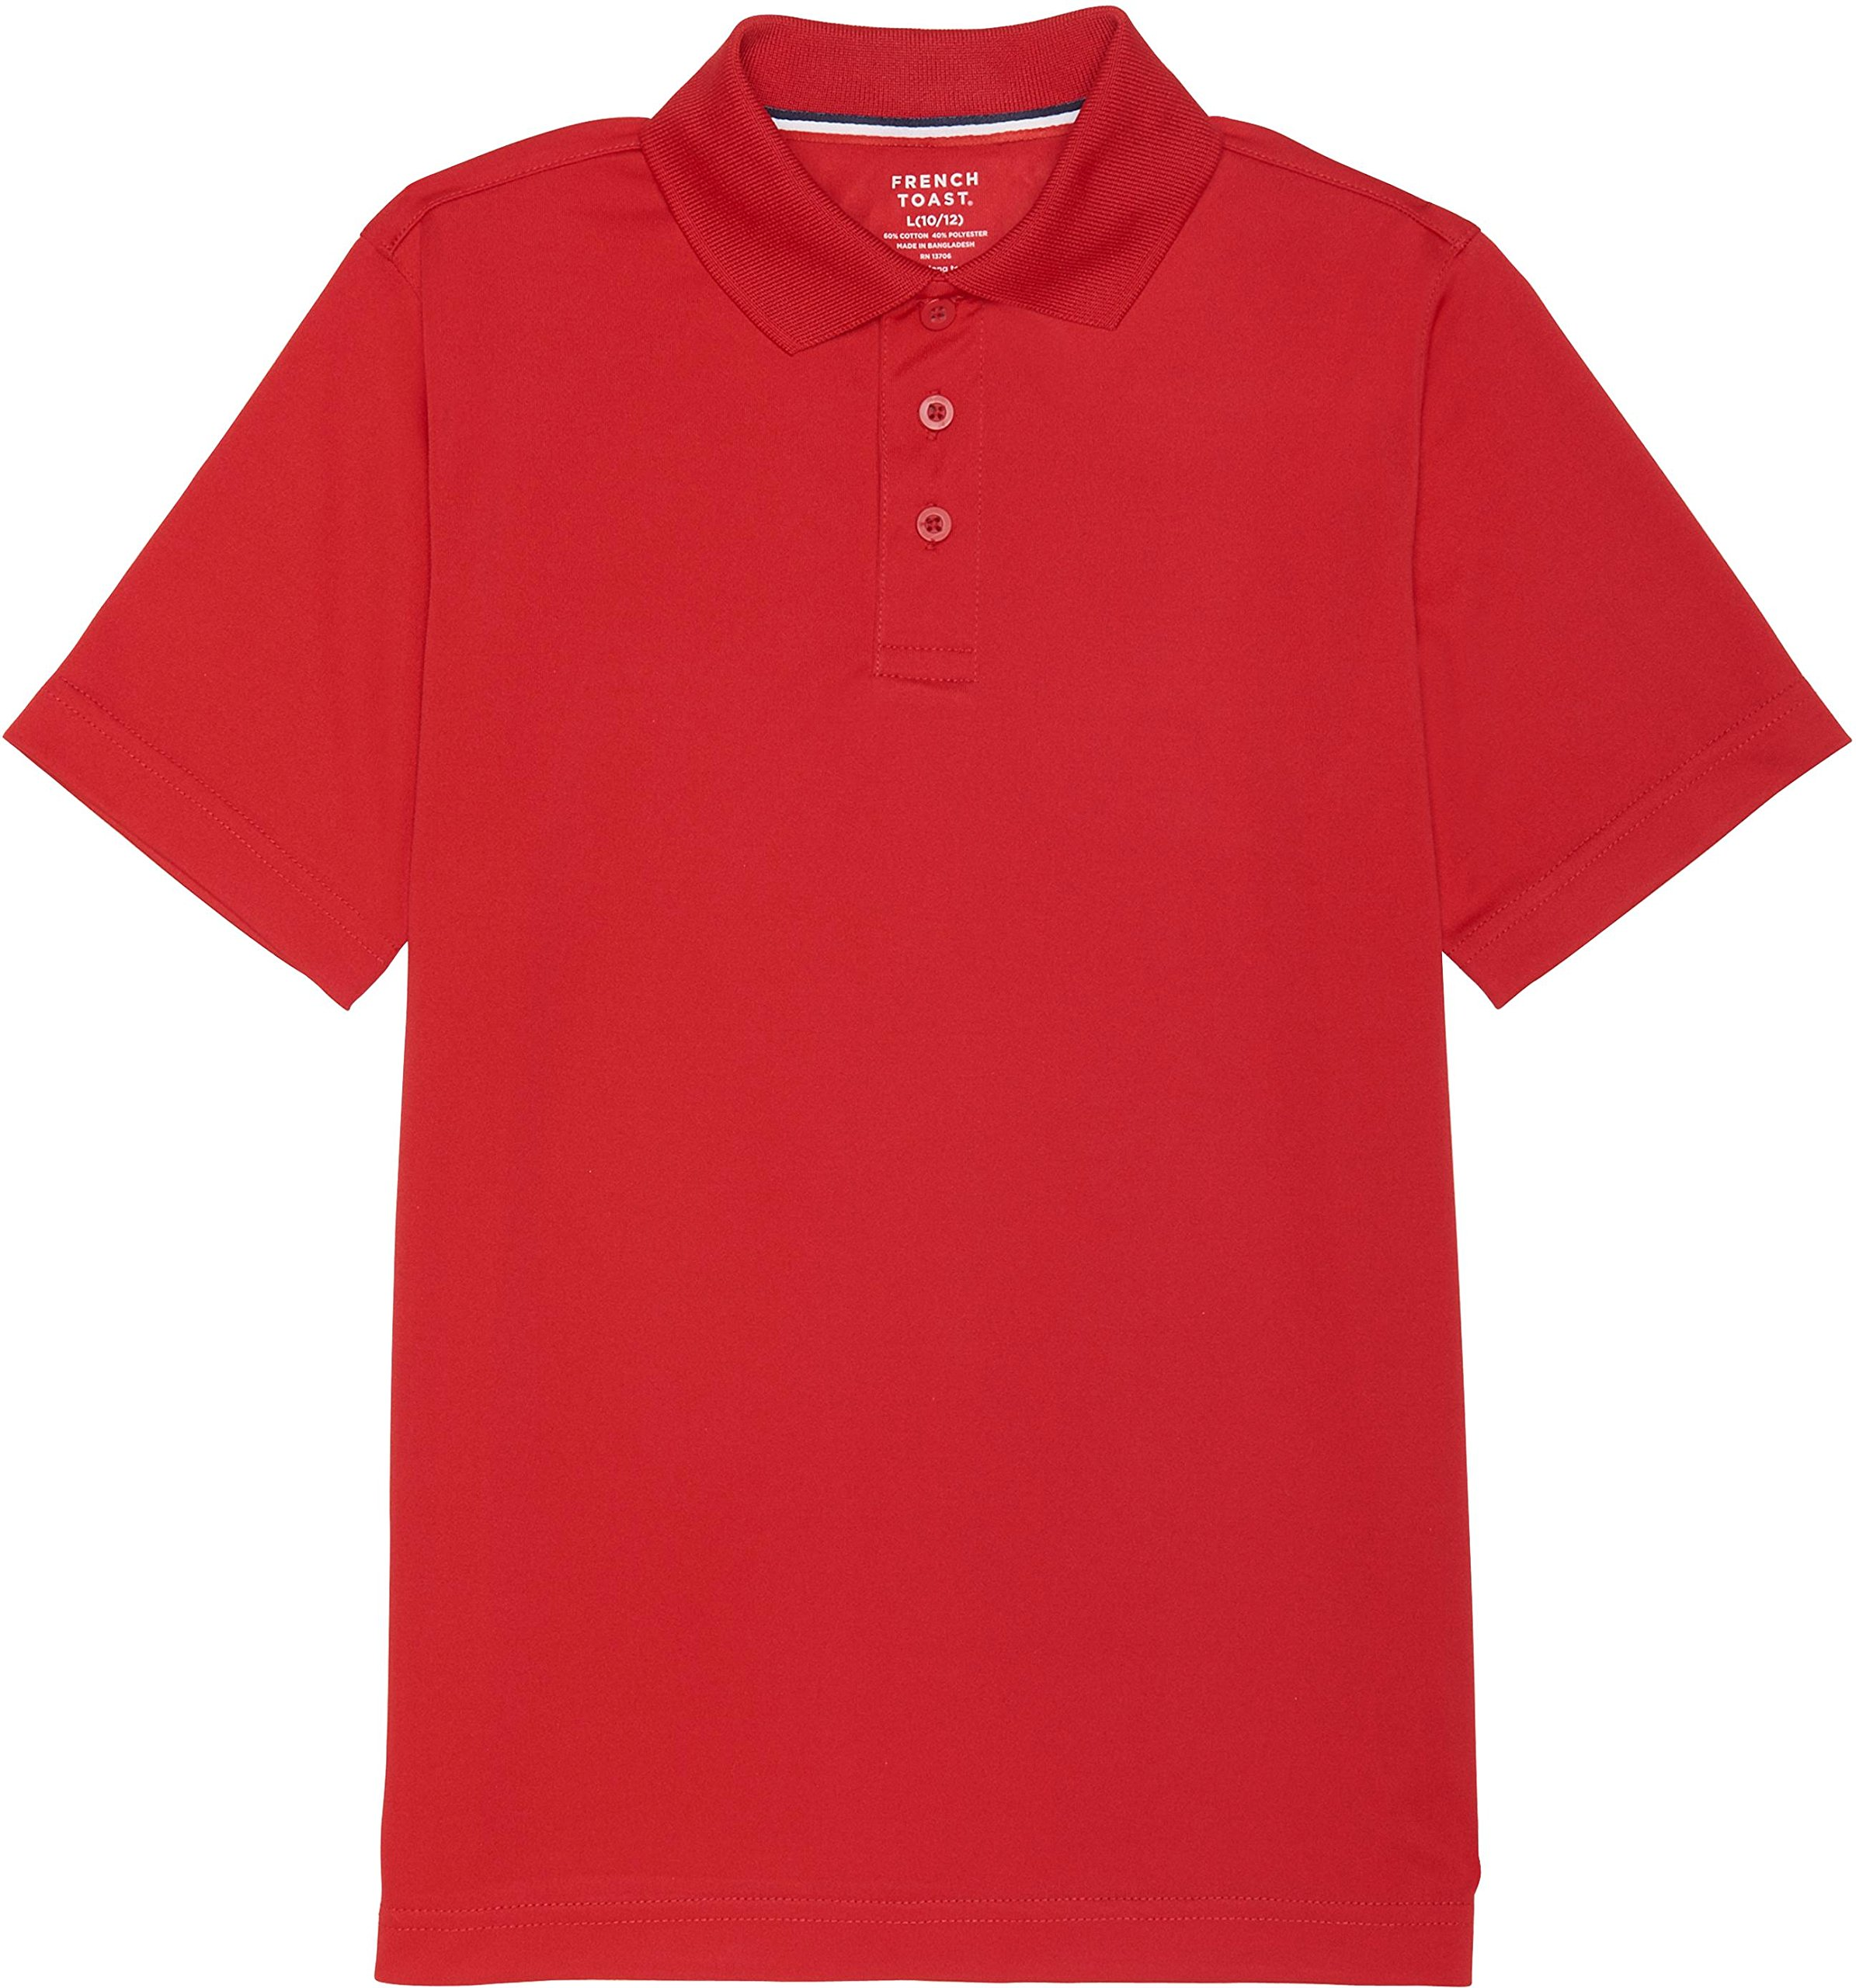 French Toast School Uniform Boys Short Sleeve Sport Polo Shirt, Red, Small (6/7)